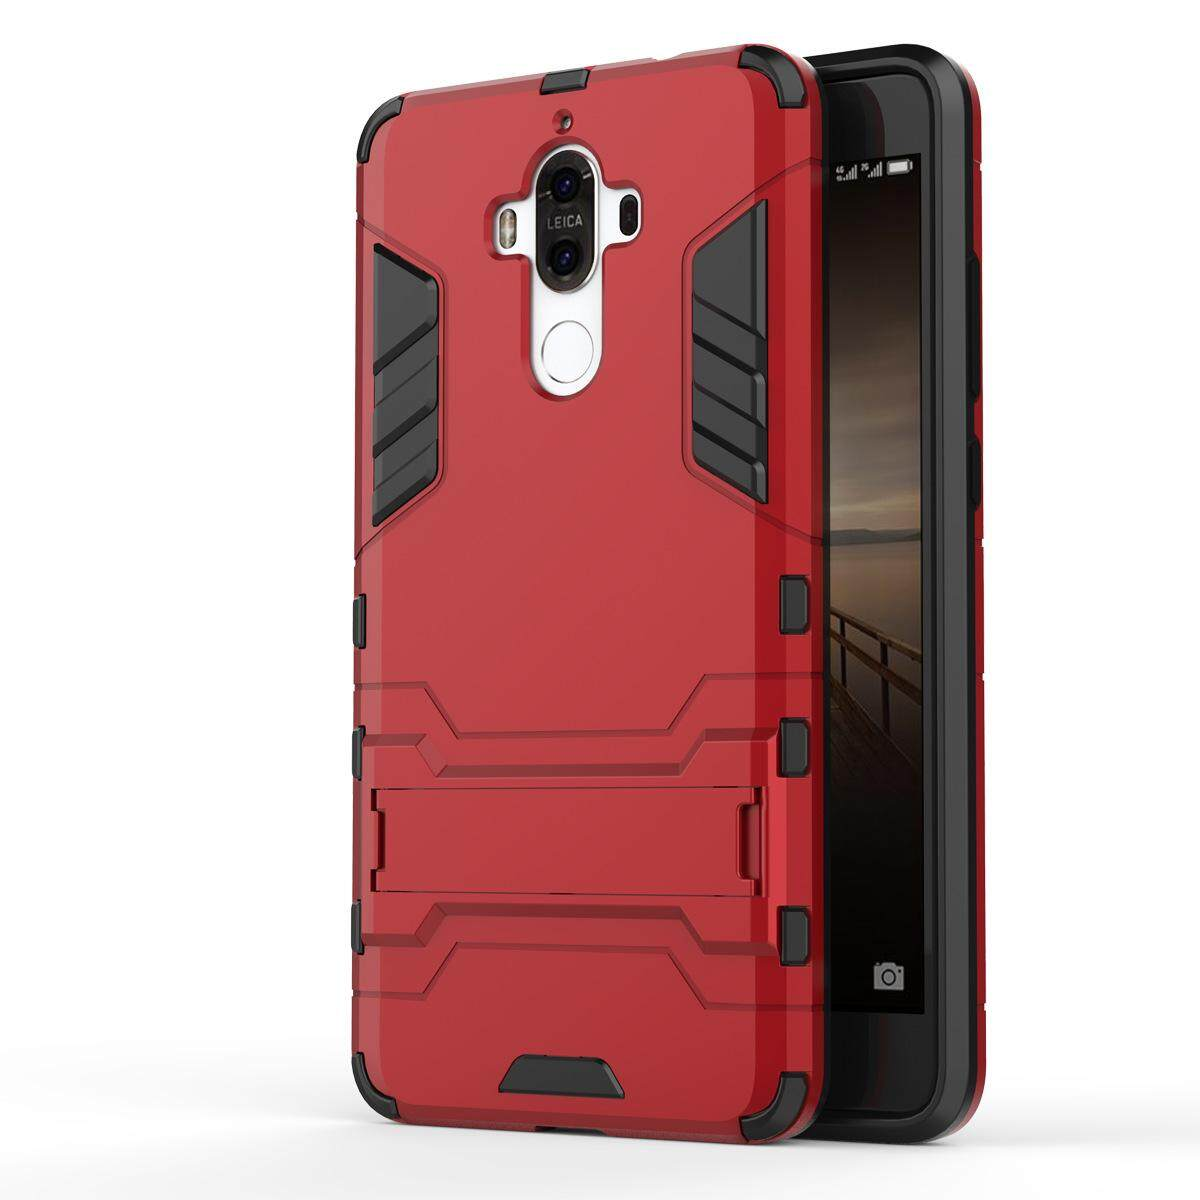 Hình ảnh for Huawei Mate 9 Case 2in1 PC+TPU Hybrid Slim Back Case Ultra Thin Armor Cover, with Kickstand Holder, Glossy, Minimalist, Casual